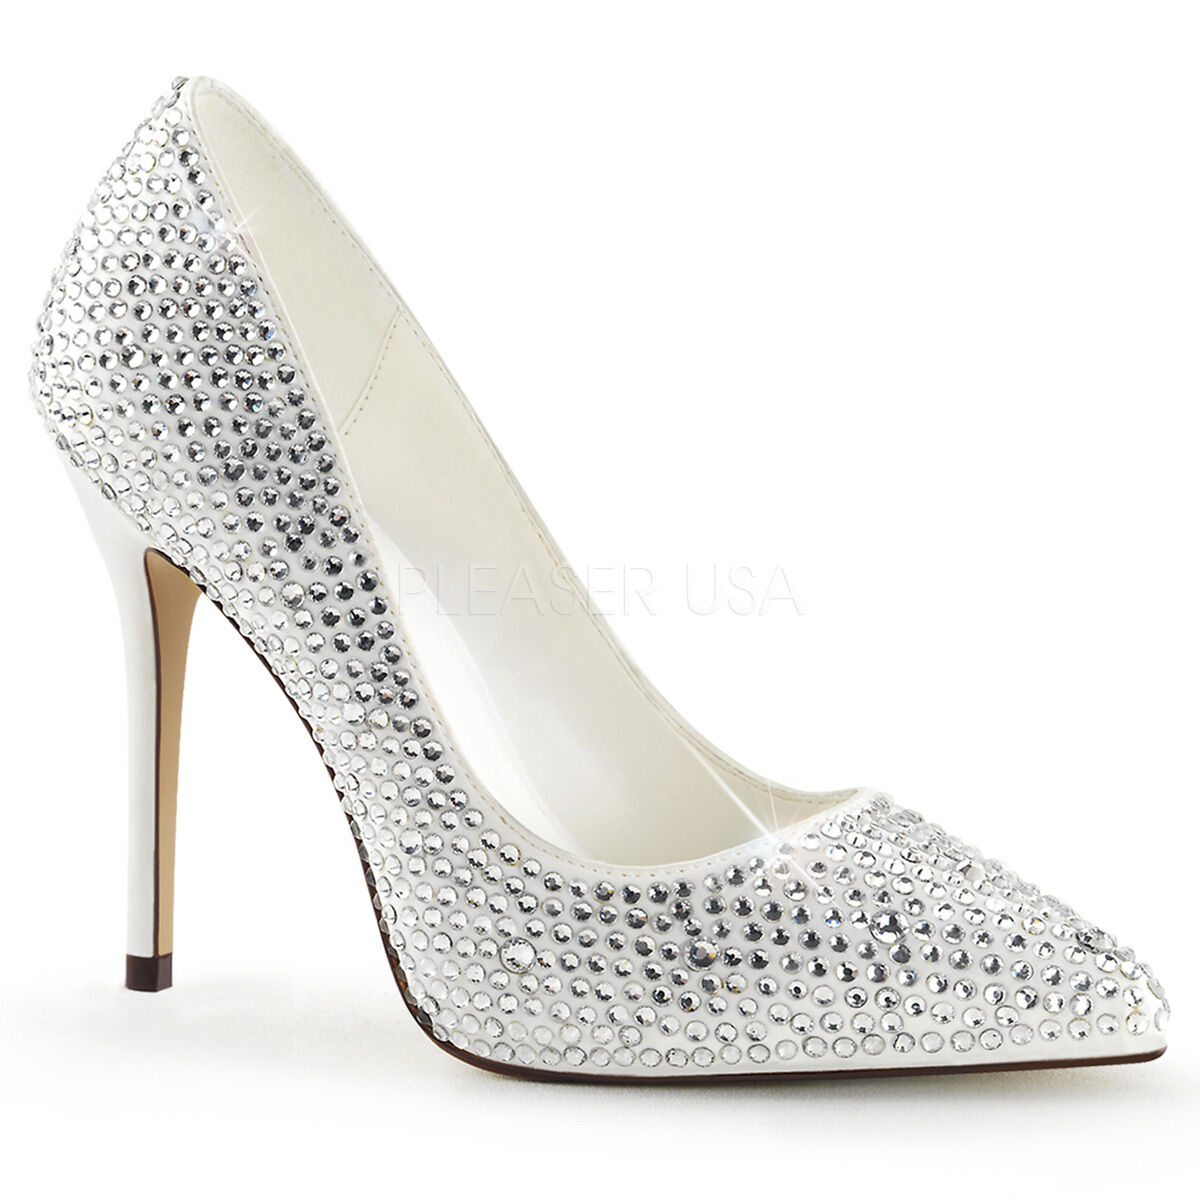 Amuse 20 RS Ivory WEISS Satin Pointy Toe Rhinestone Pump Schuhe 5